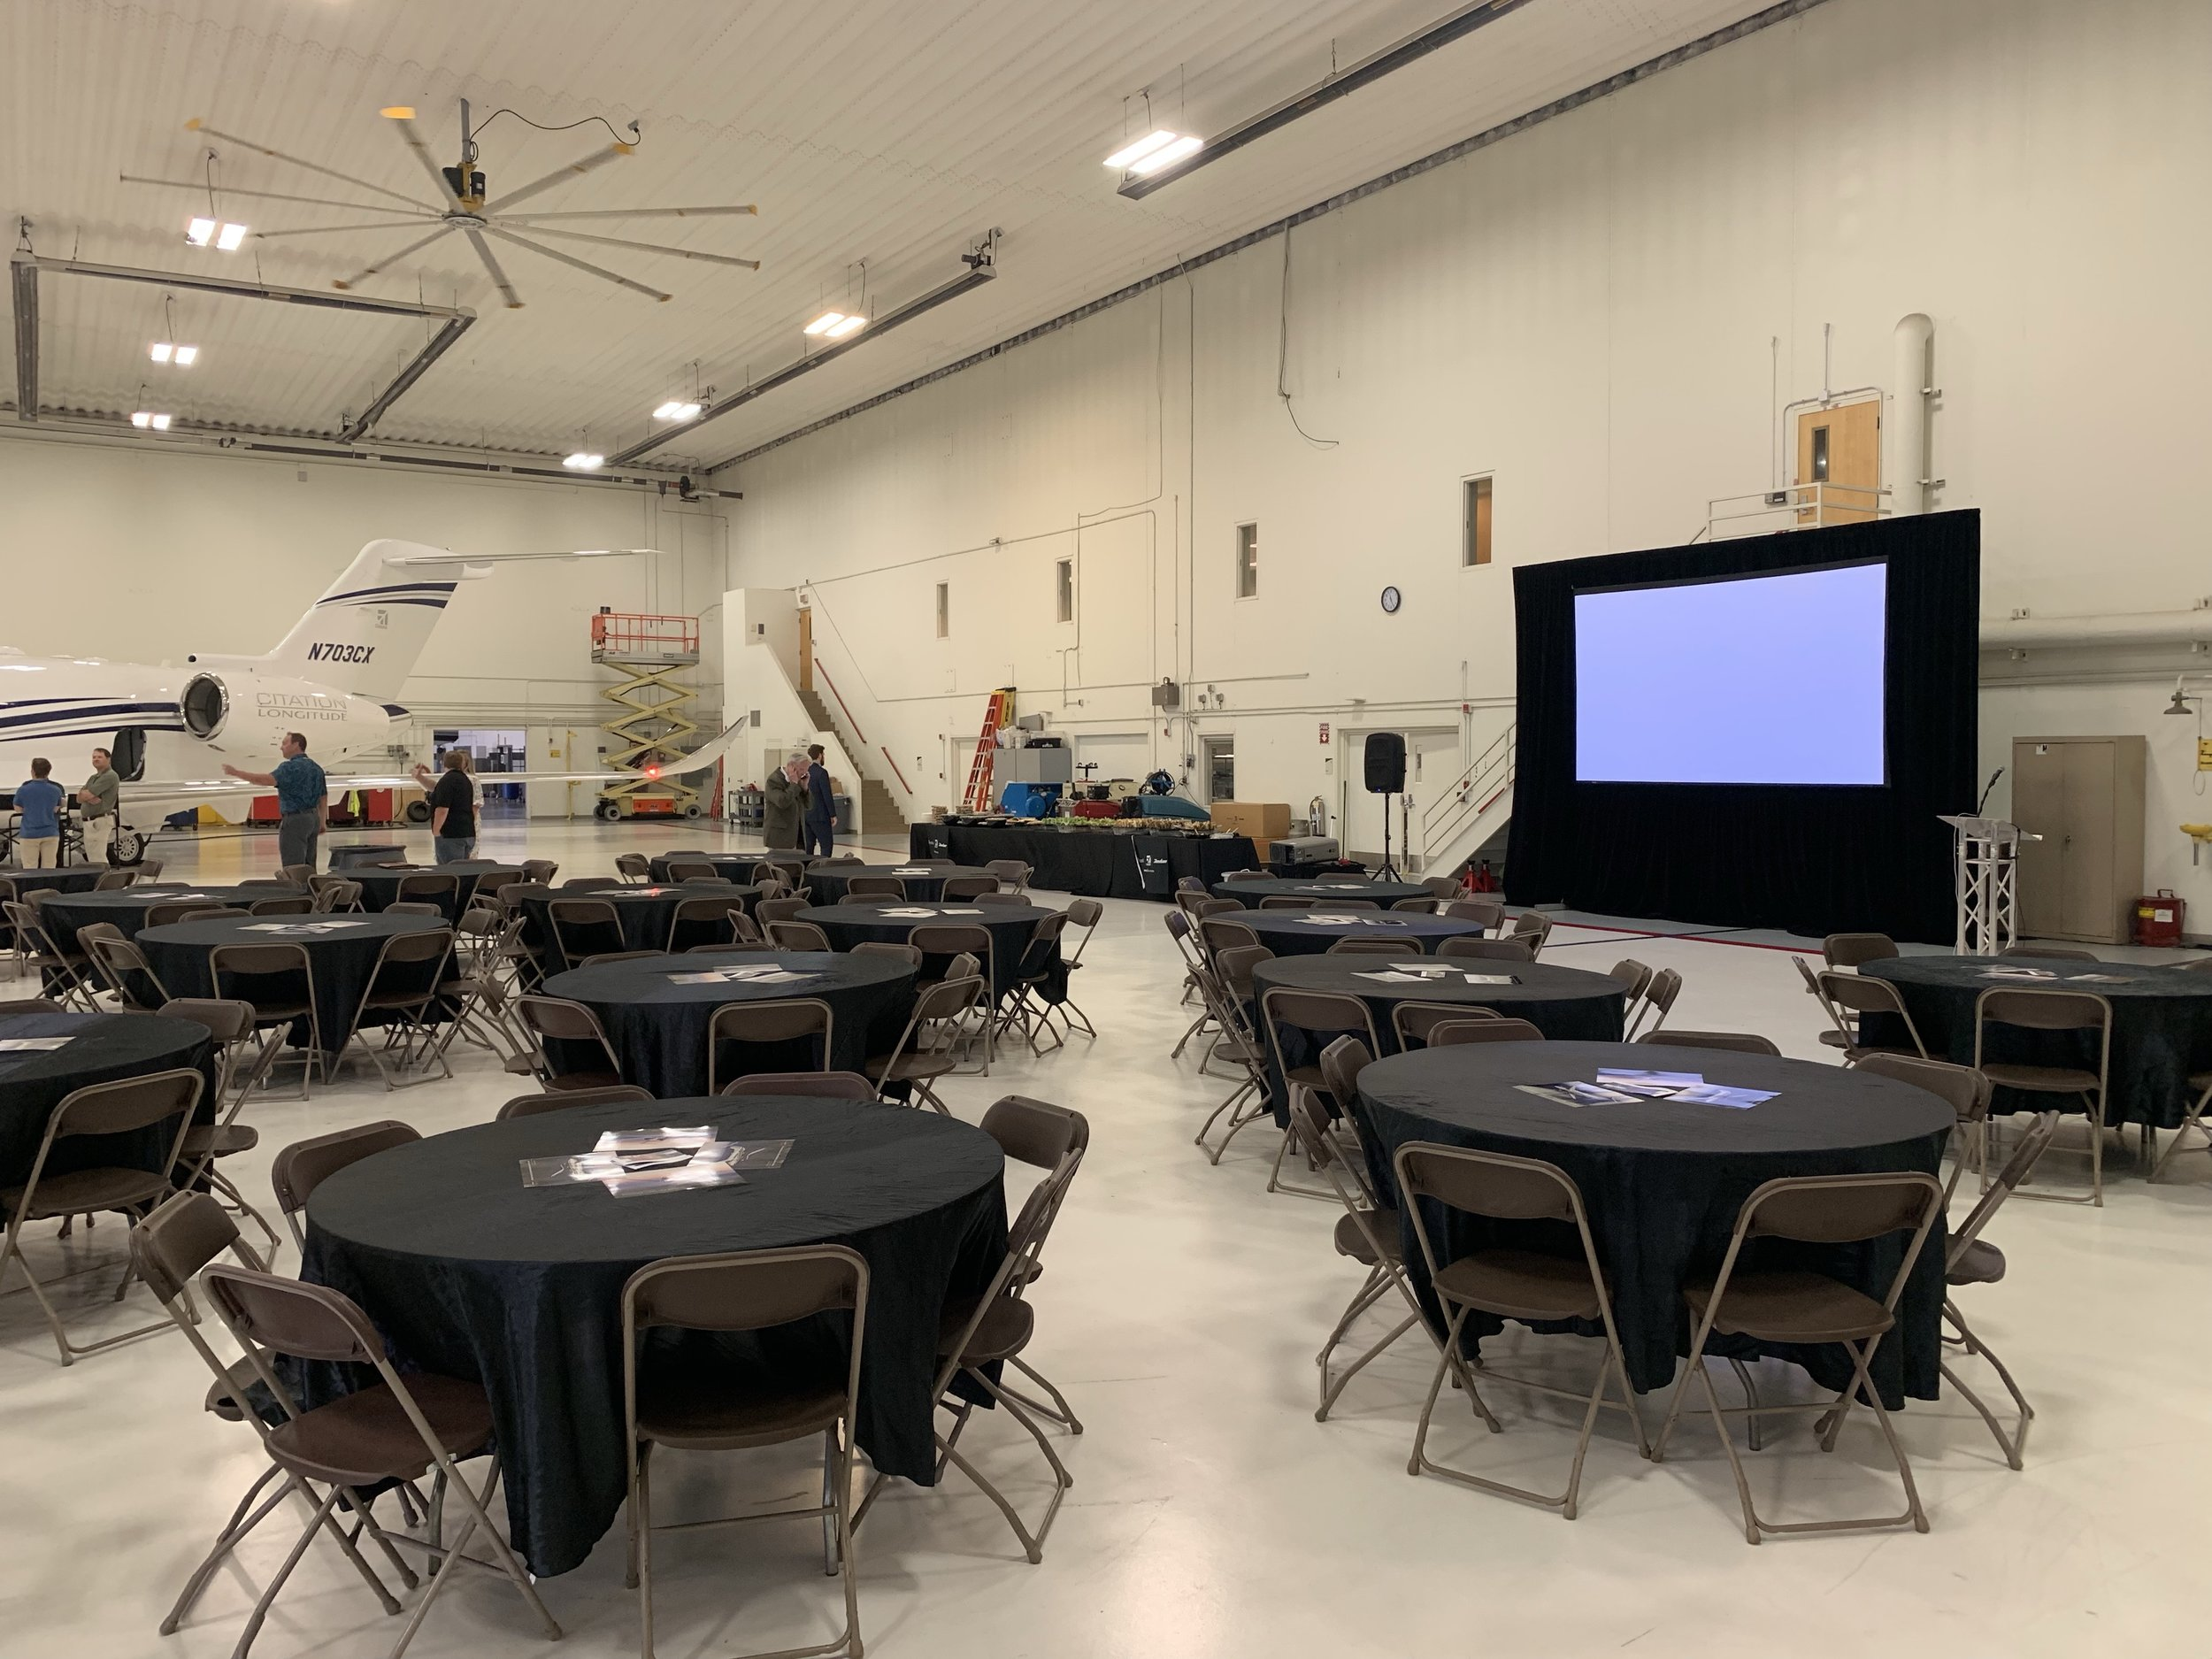 Picture of AV for You Rental Equipment for a Hangar Event in Bloomington, MN